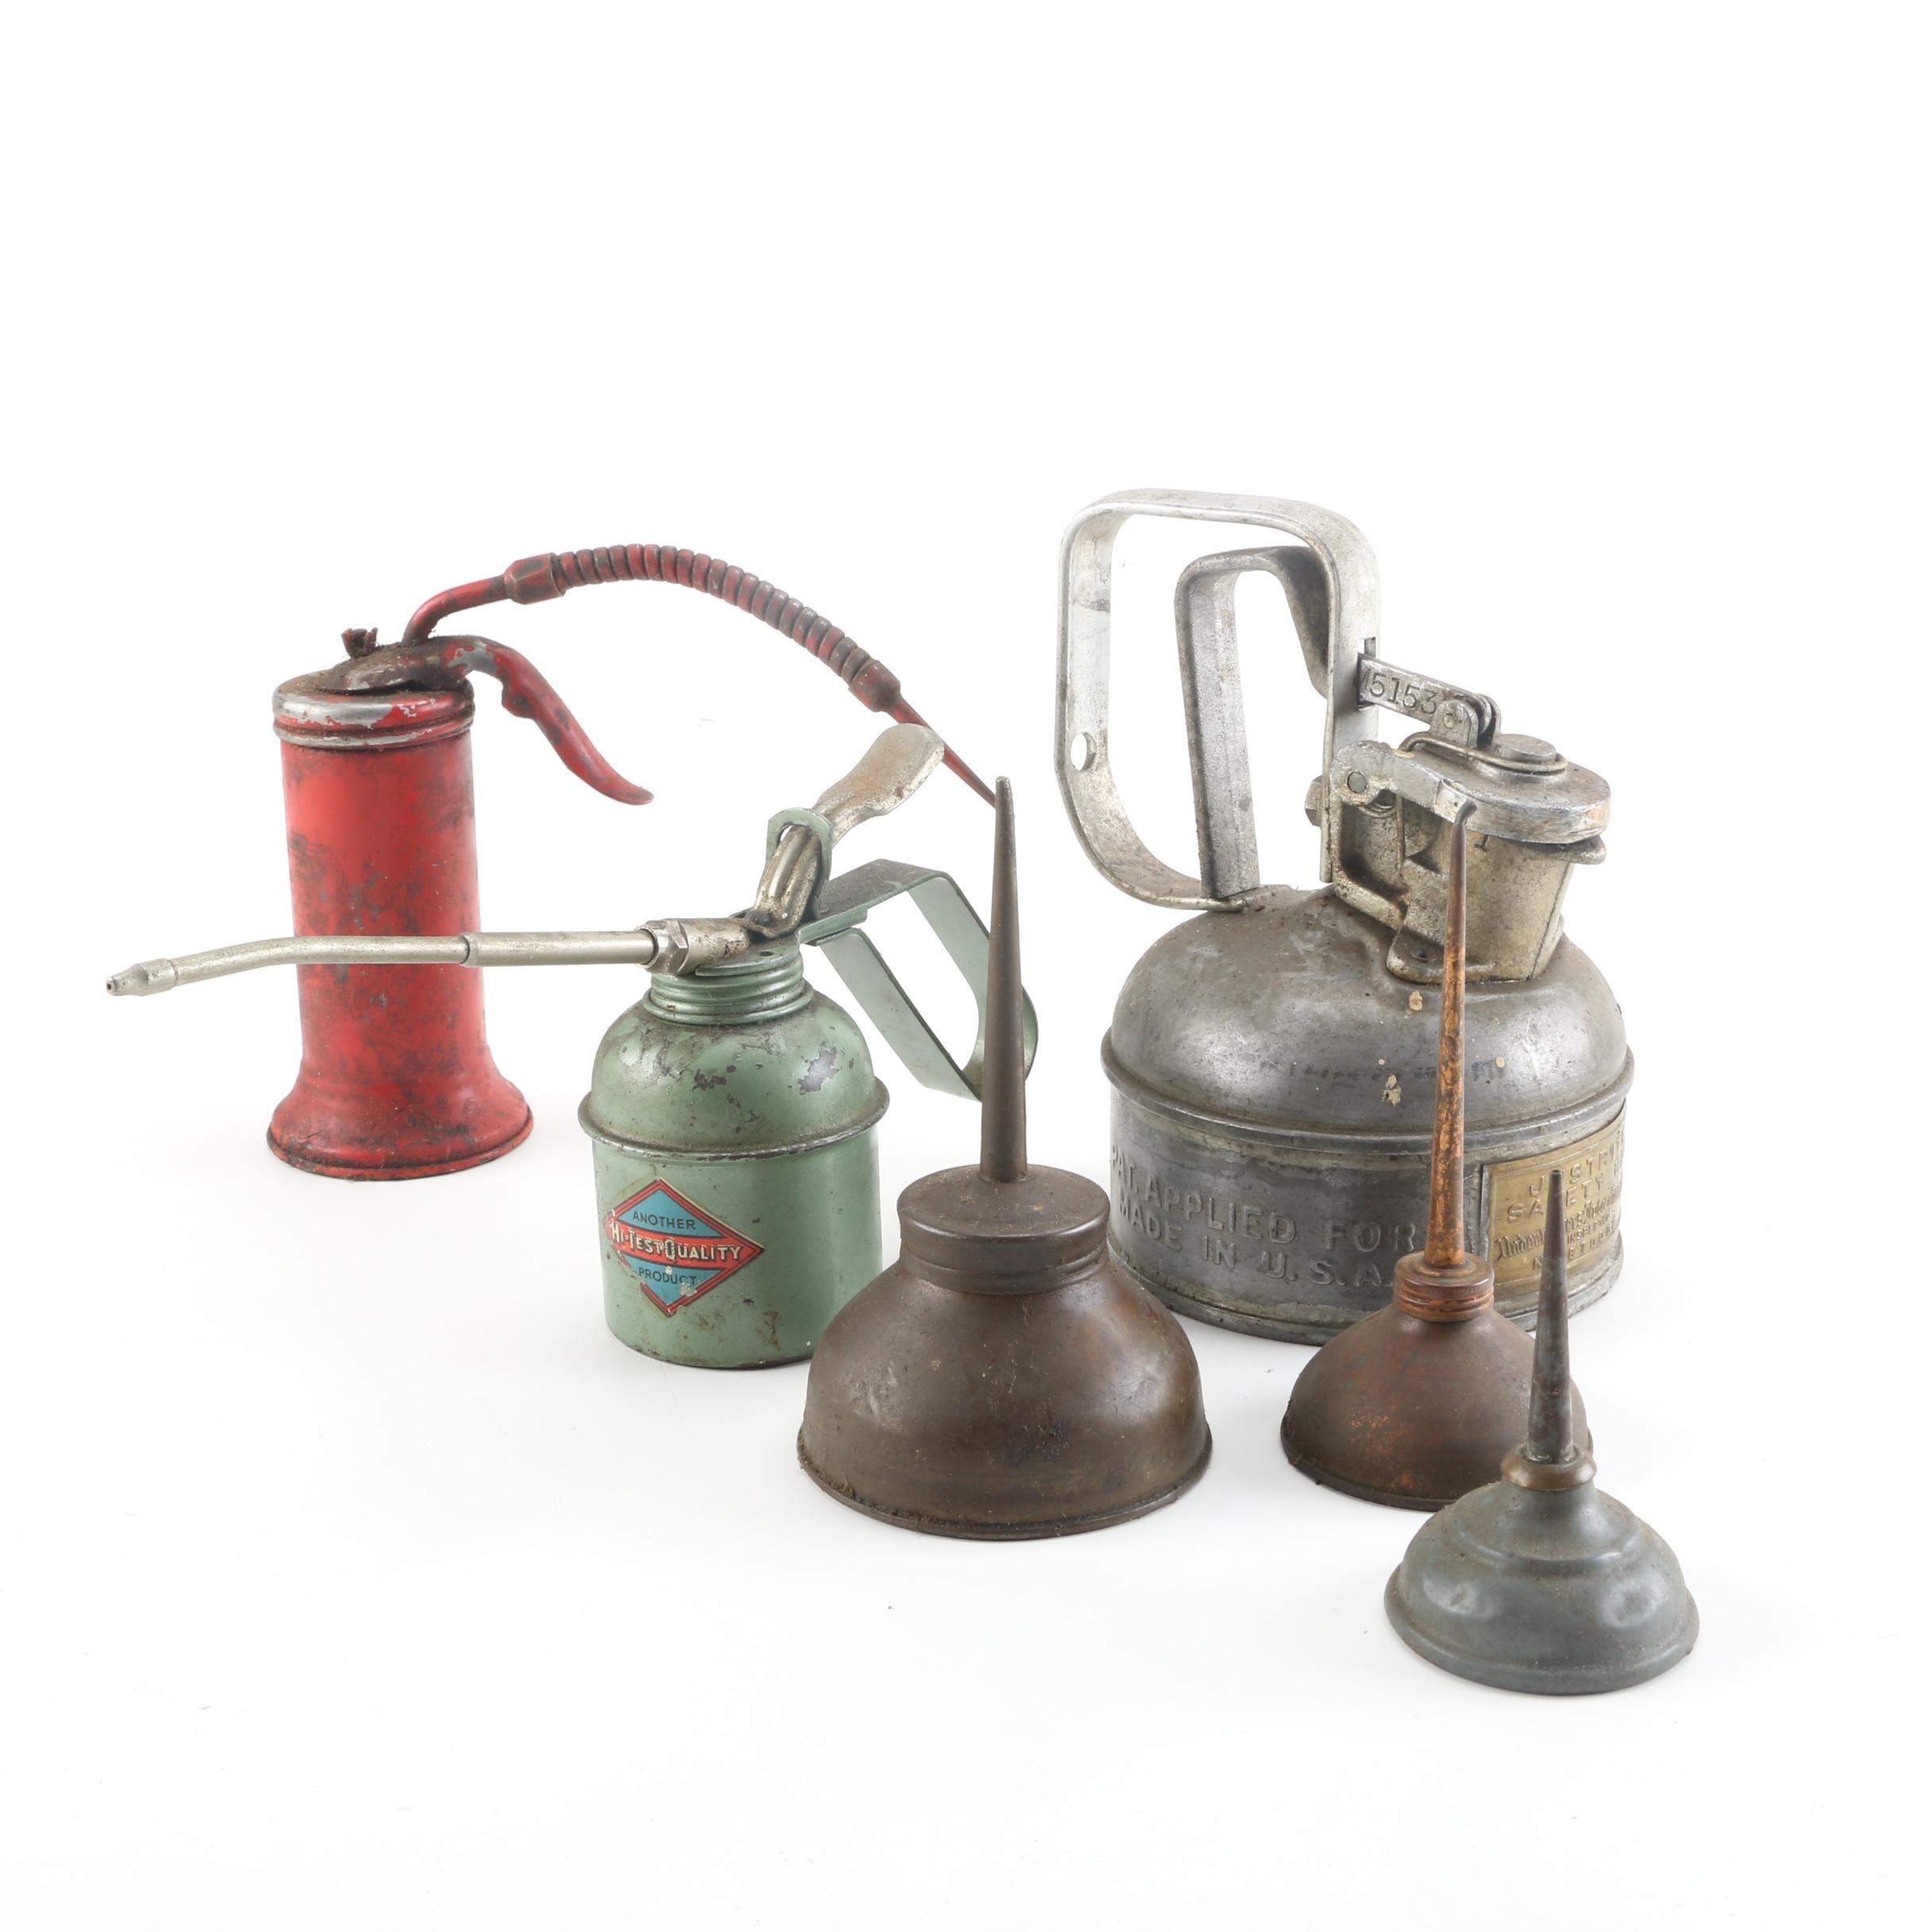 Oil Cans including Justrite